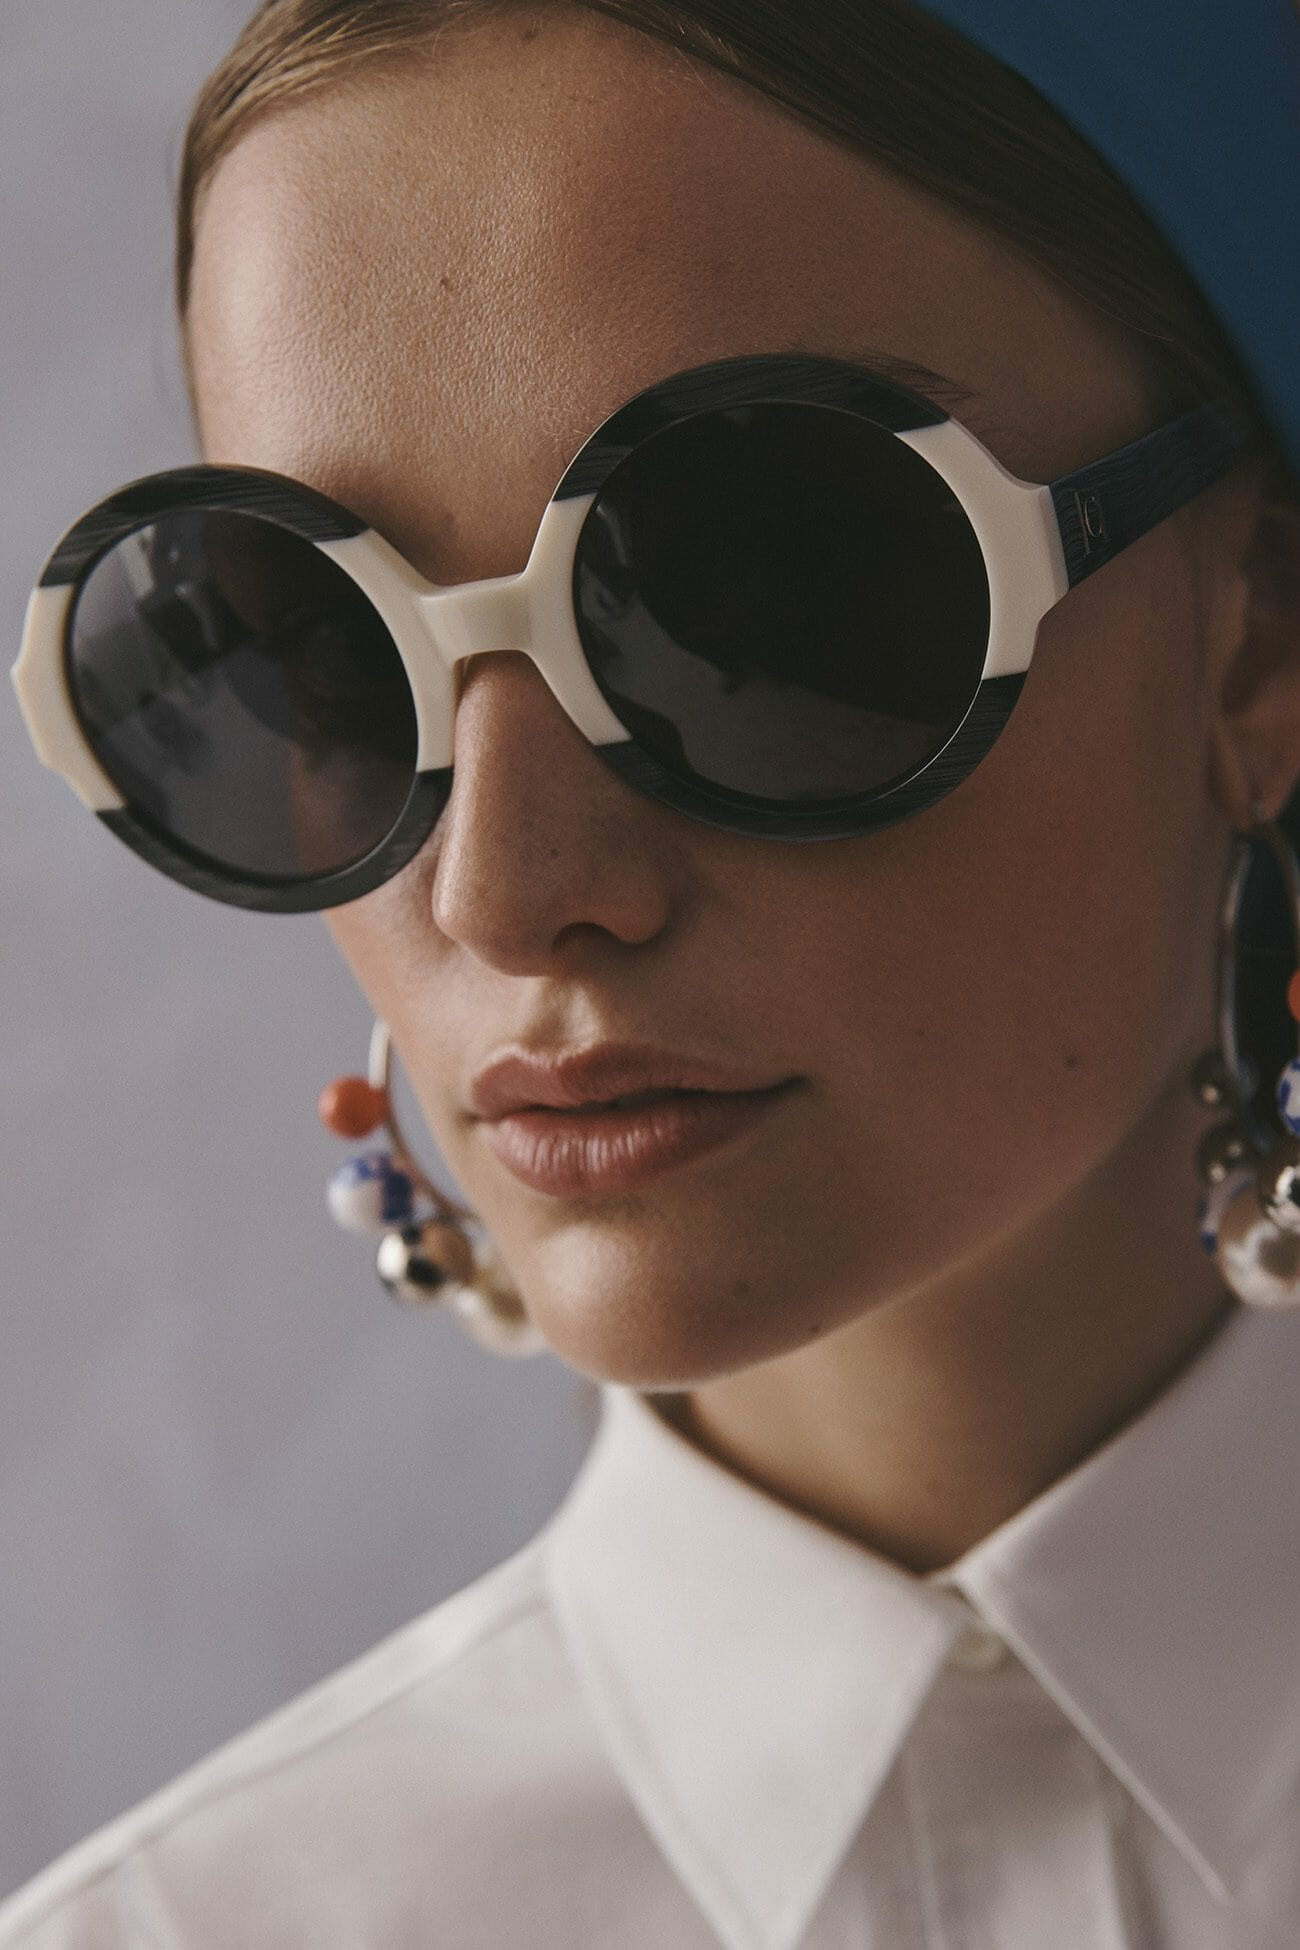 Carolina Herrera New York Resort 2020 Collection white shirt sunglasses model